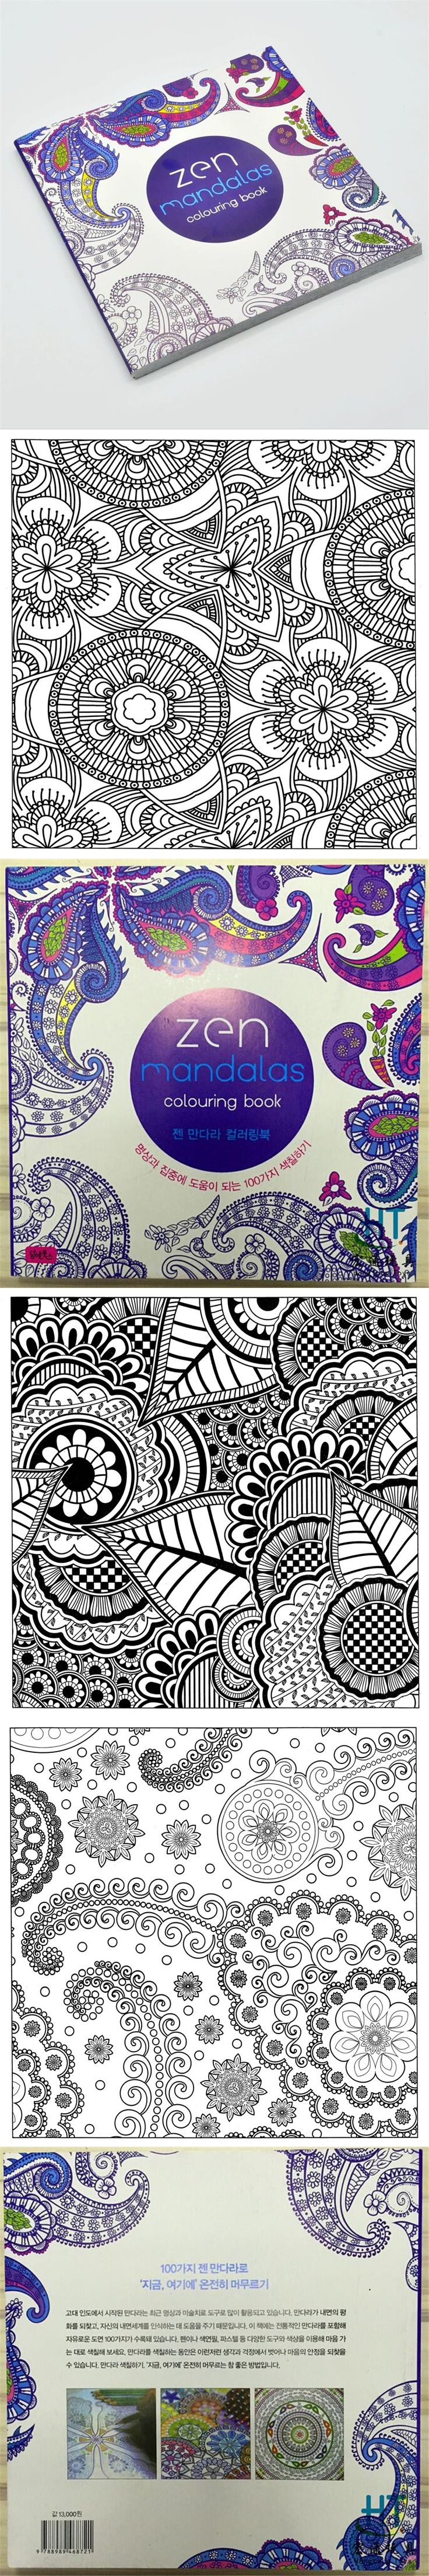 Mandala Book 104pages Hardcover Stress Relieving Drawing Material Mandalas Para Colorear Painting Graffiti Adult Coloring Books